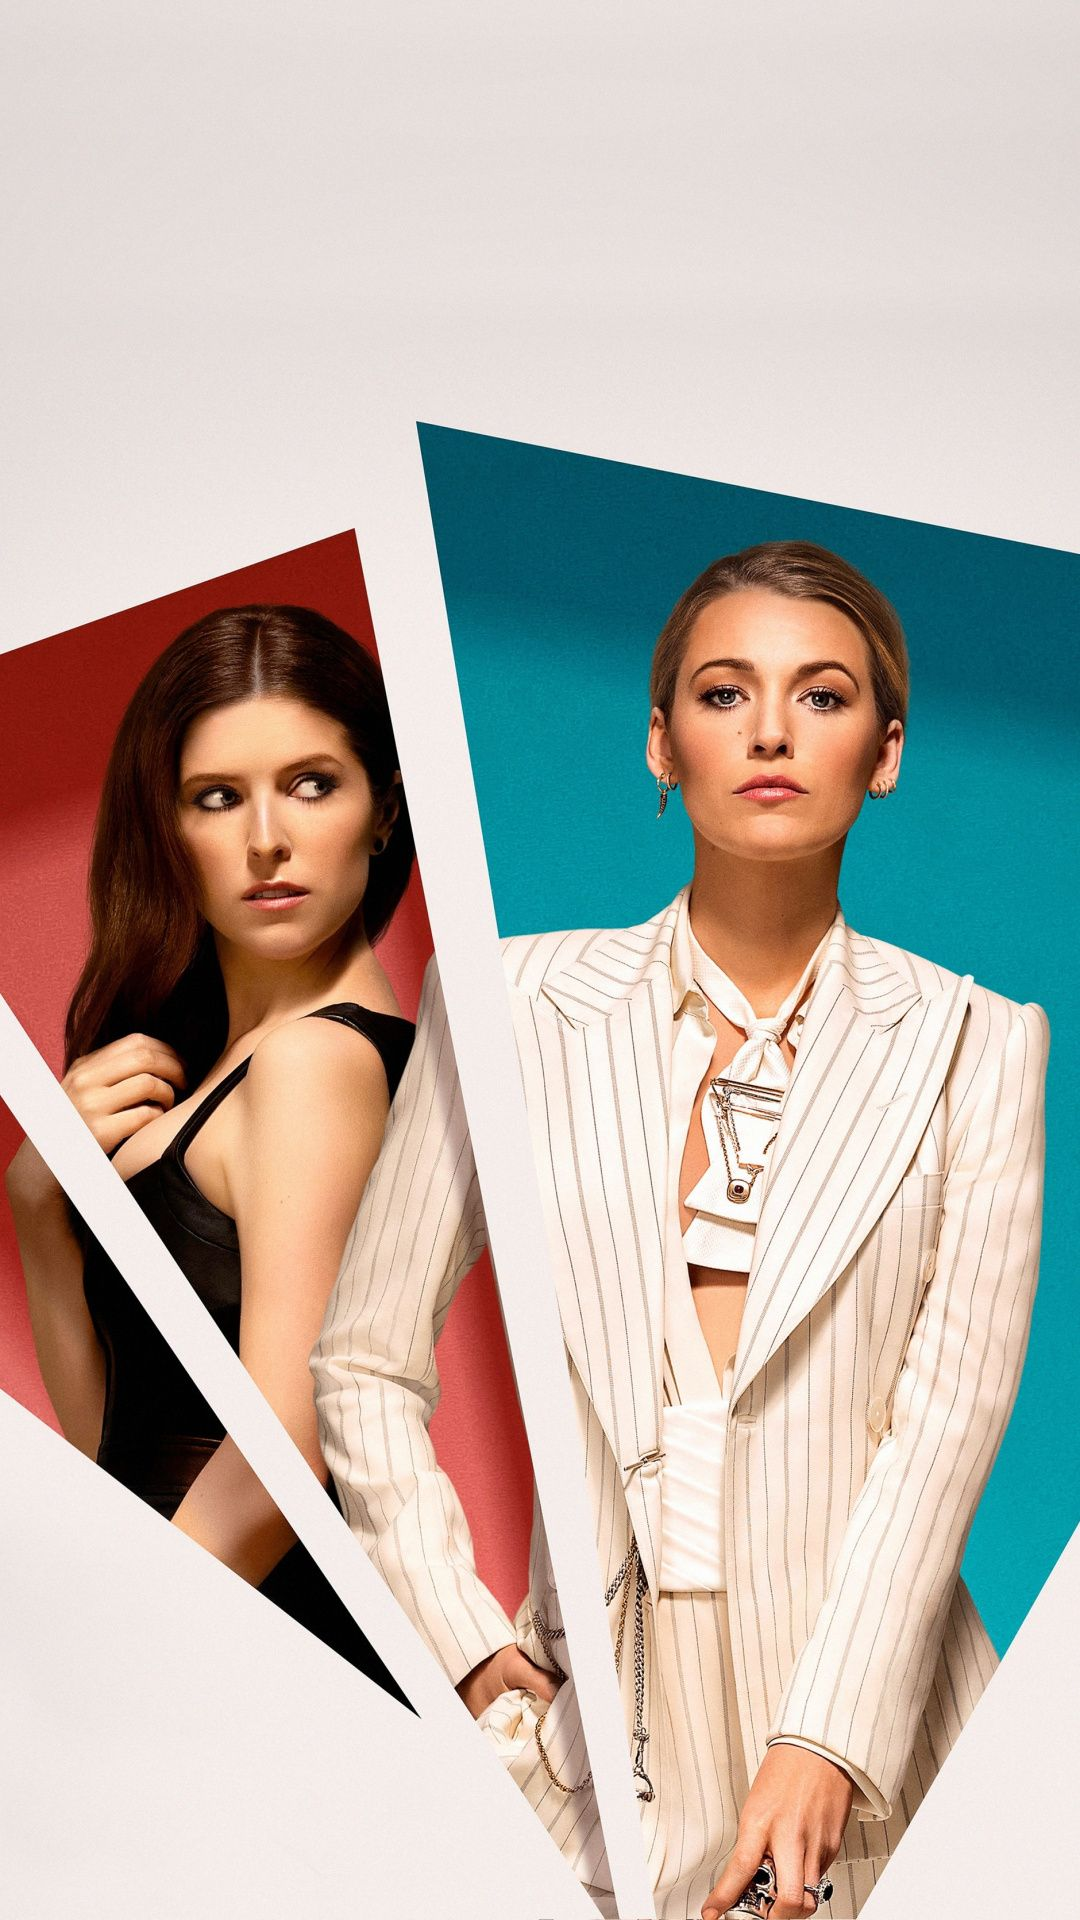 A Simple Favor Anna Kendrick Blake Lively 2018 Movie Wallpaper Blake Lively Movie Wallpapers Anna Kendrick